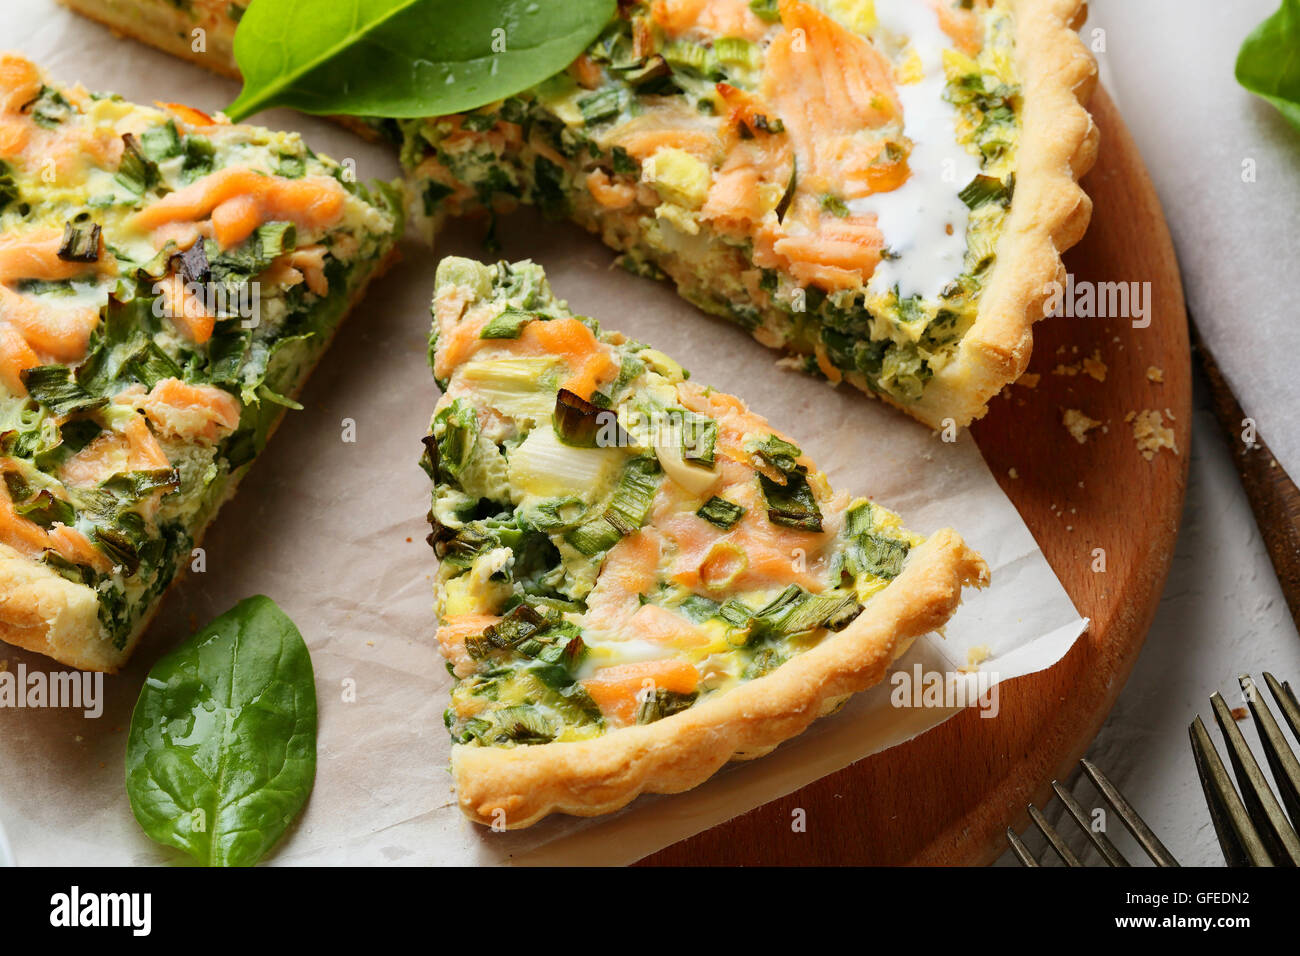 rustic salmon quiche with spinach, food - Stock Image